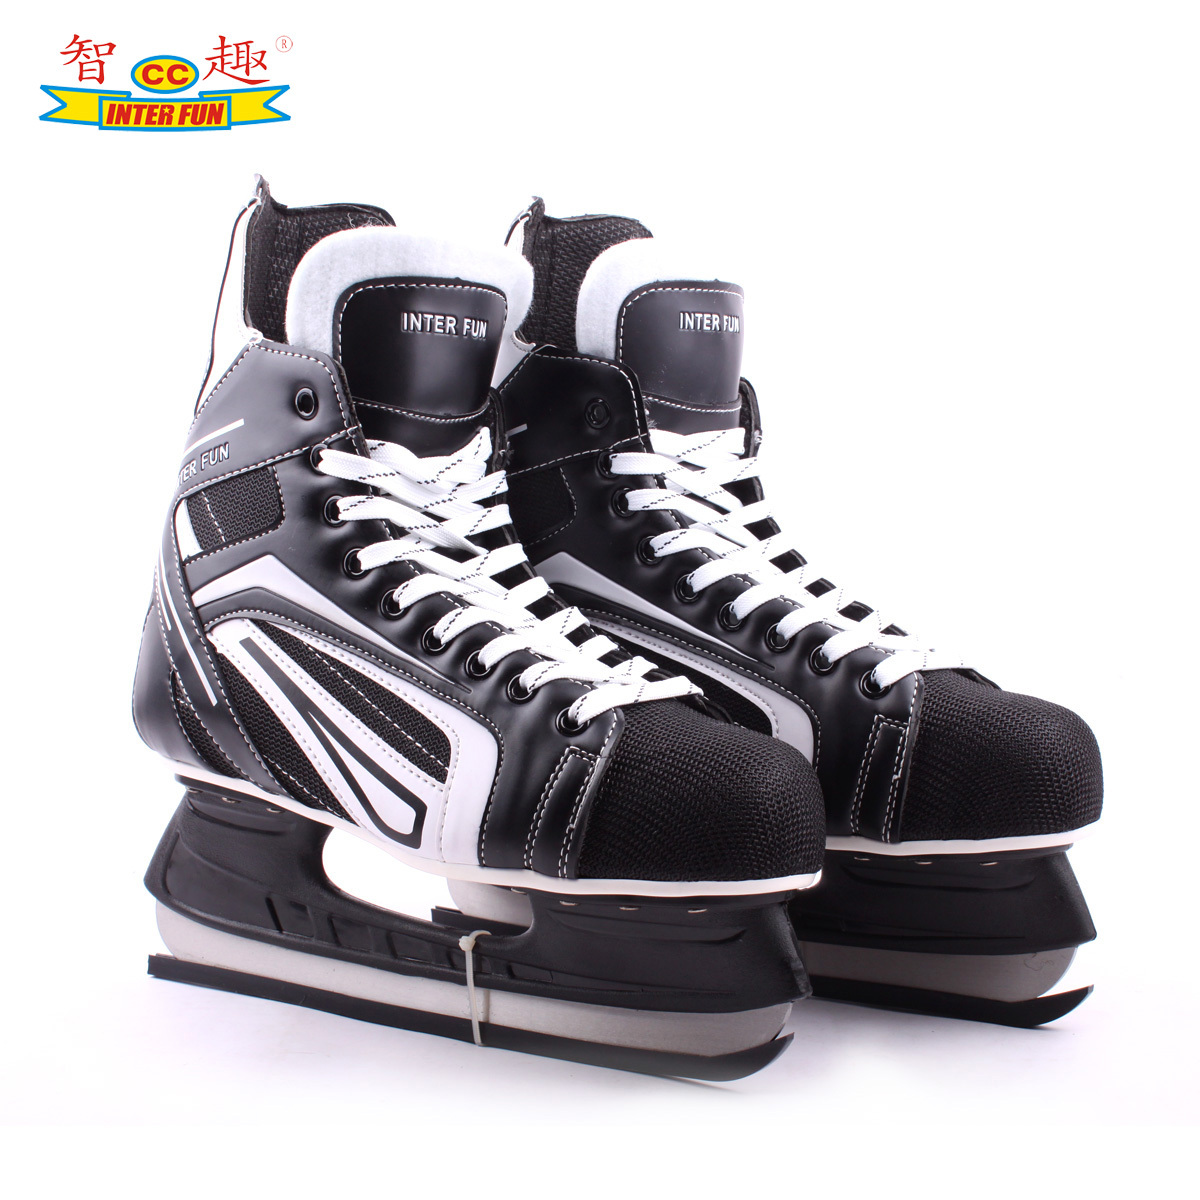 Mentally interesting canvas skates skate shoes, skate shoes, hockey shoes fixed code a genuine professional 507